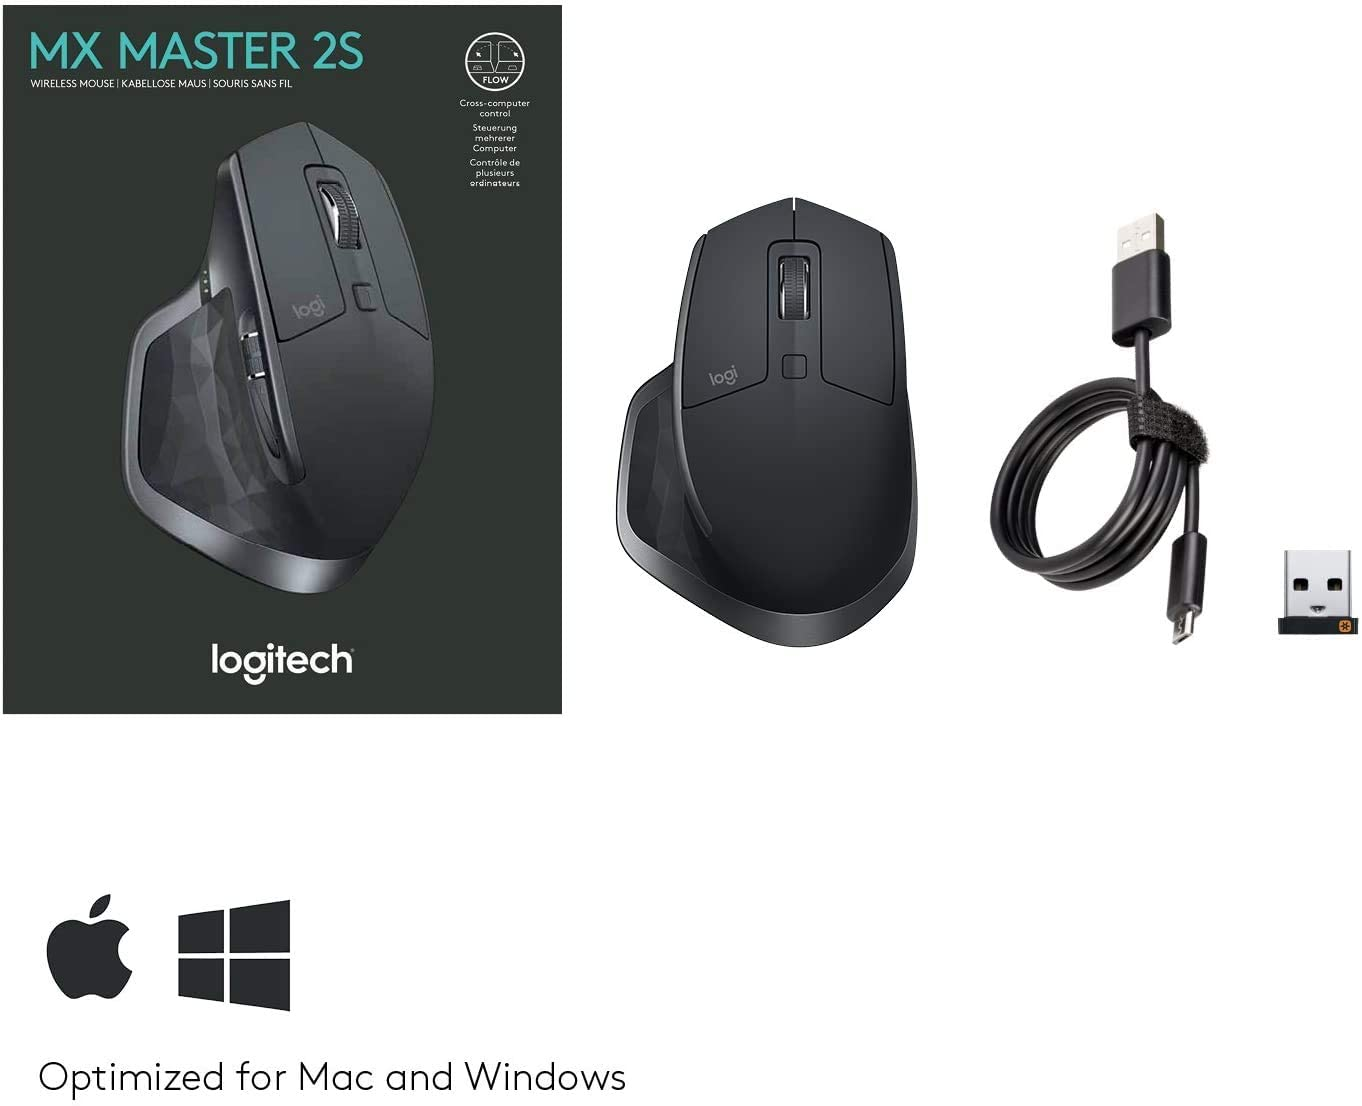 Logitech MX Master 2S Wireless Mouse 910-005139- GRAPHITE